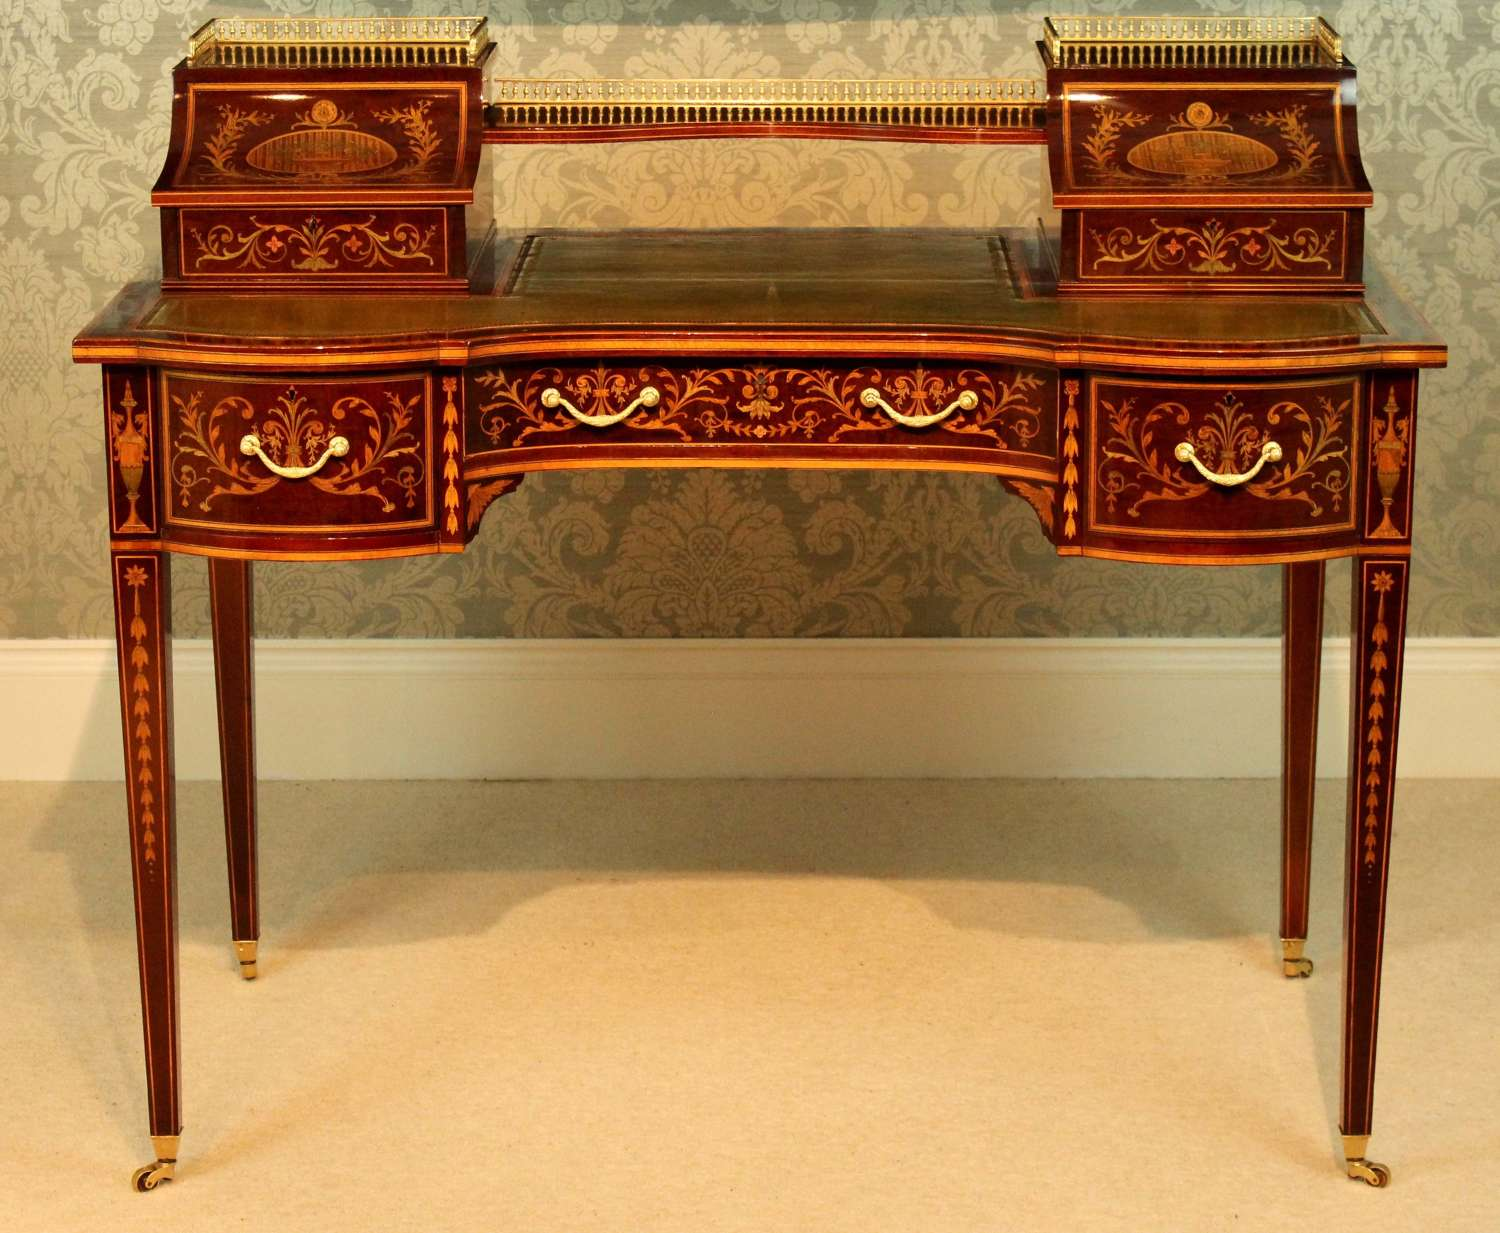 A Late Victorian Mahogany Inlaid Carleton House Style Desk